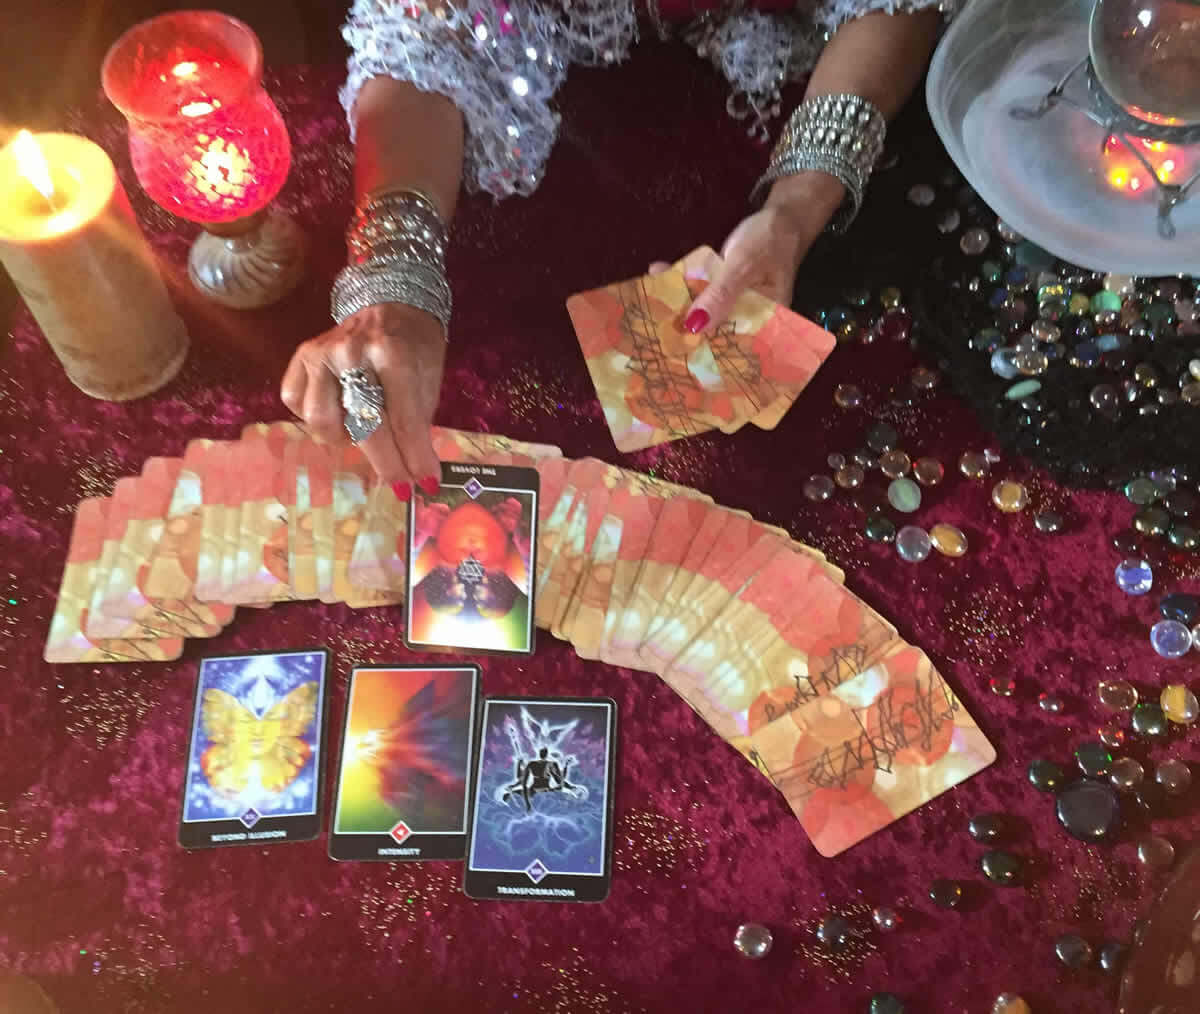 Female psychic's hands showing off her tarot card readings